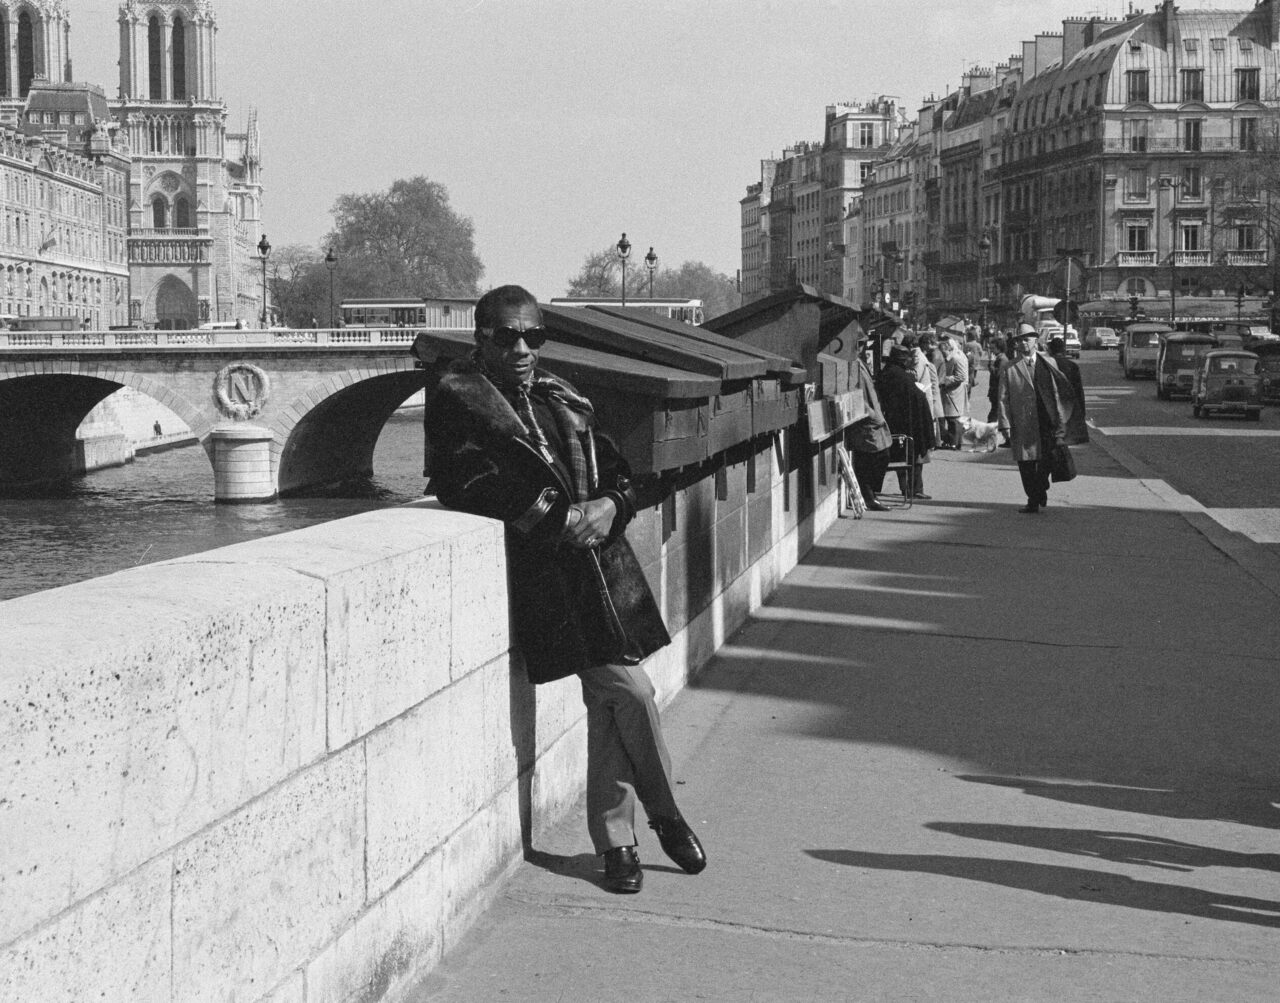 James Baldwin worked on his first novel in Paris, and he ultimately spent decades living in France.